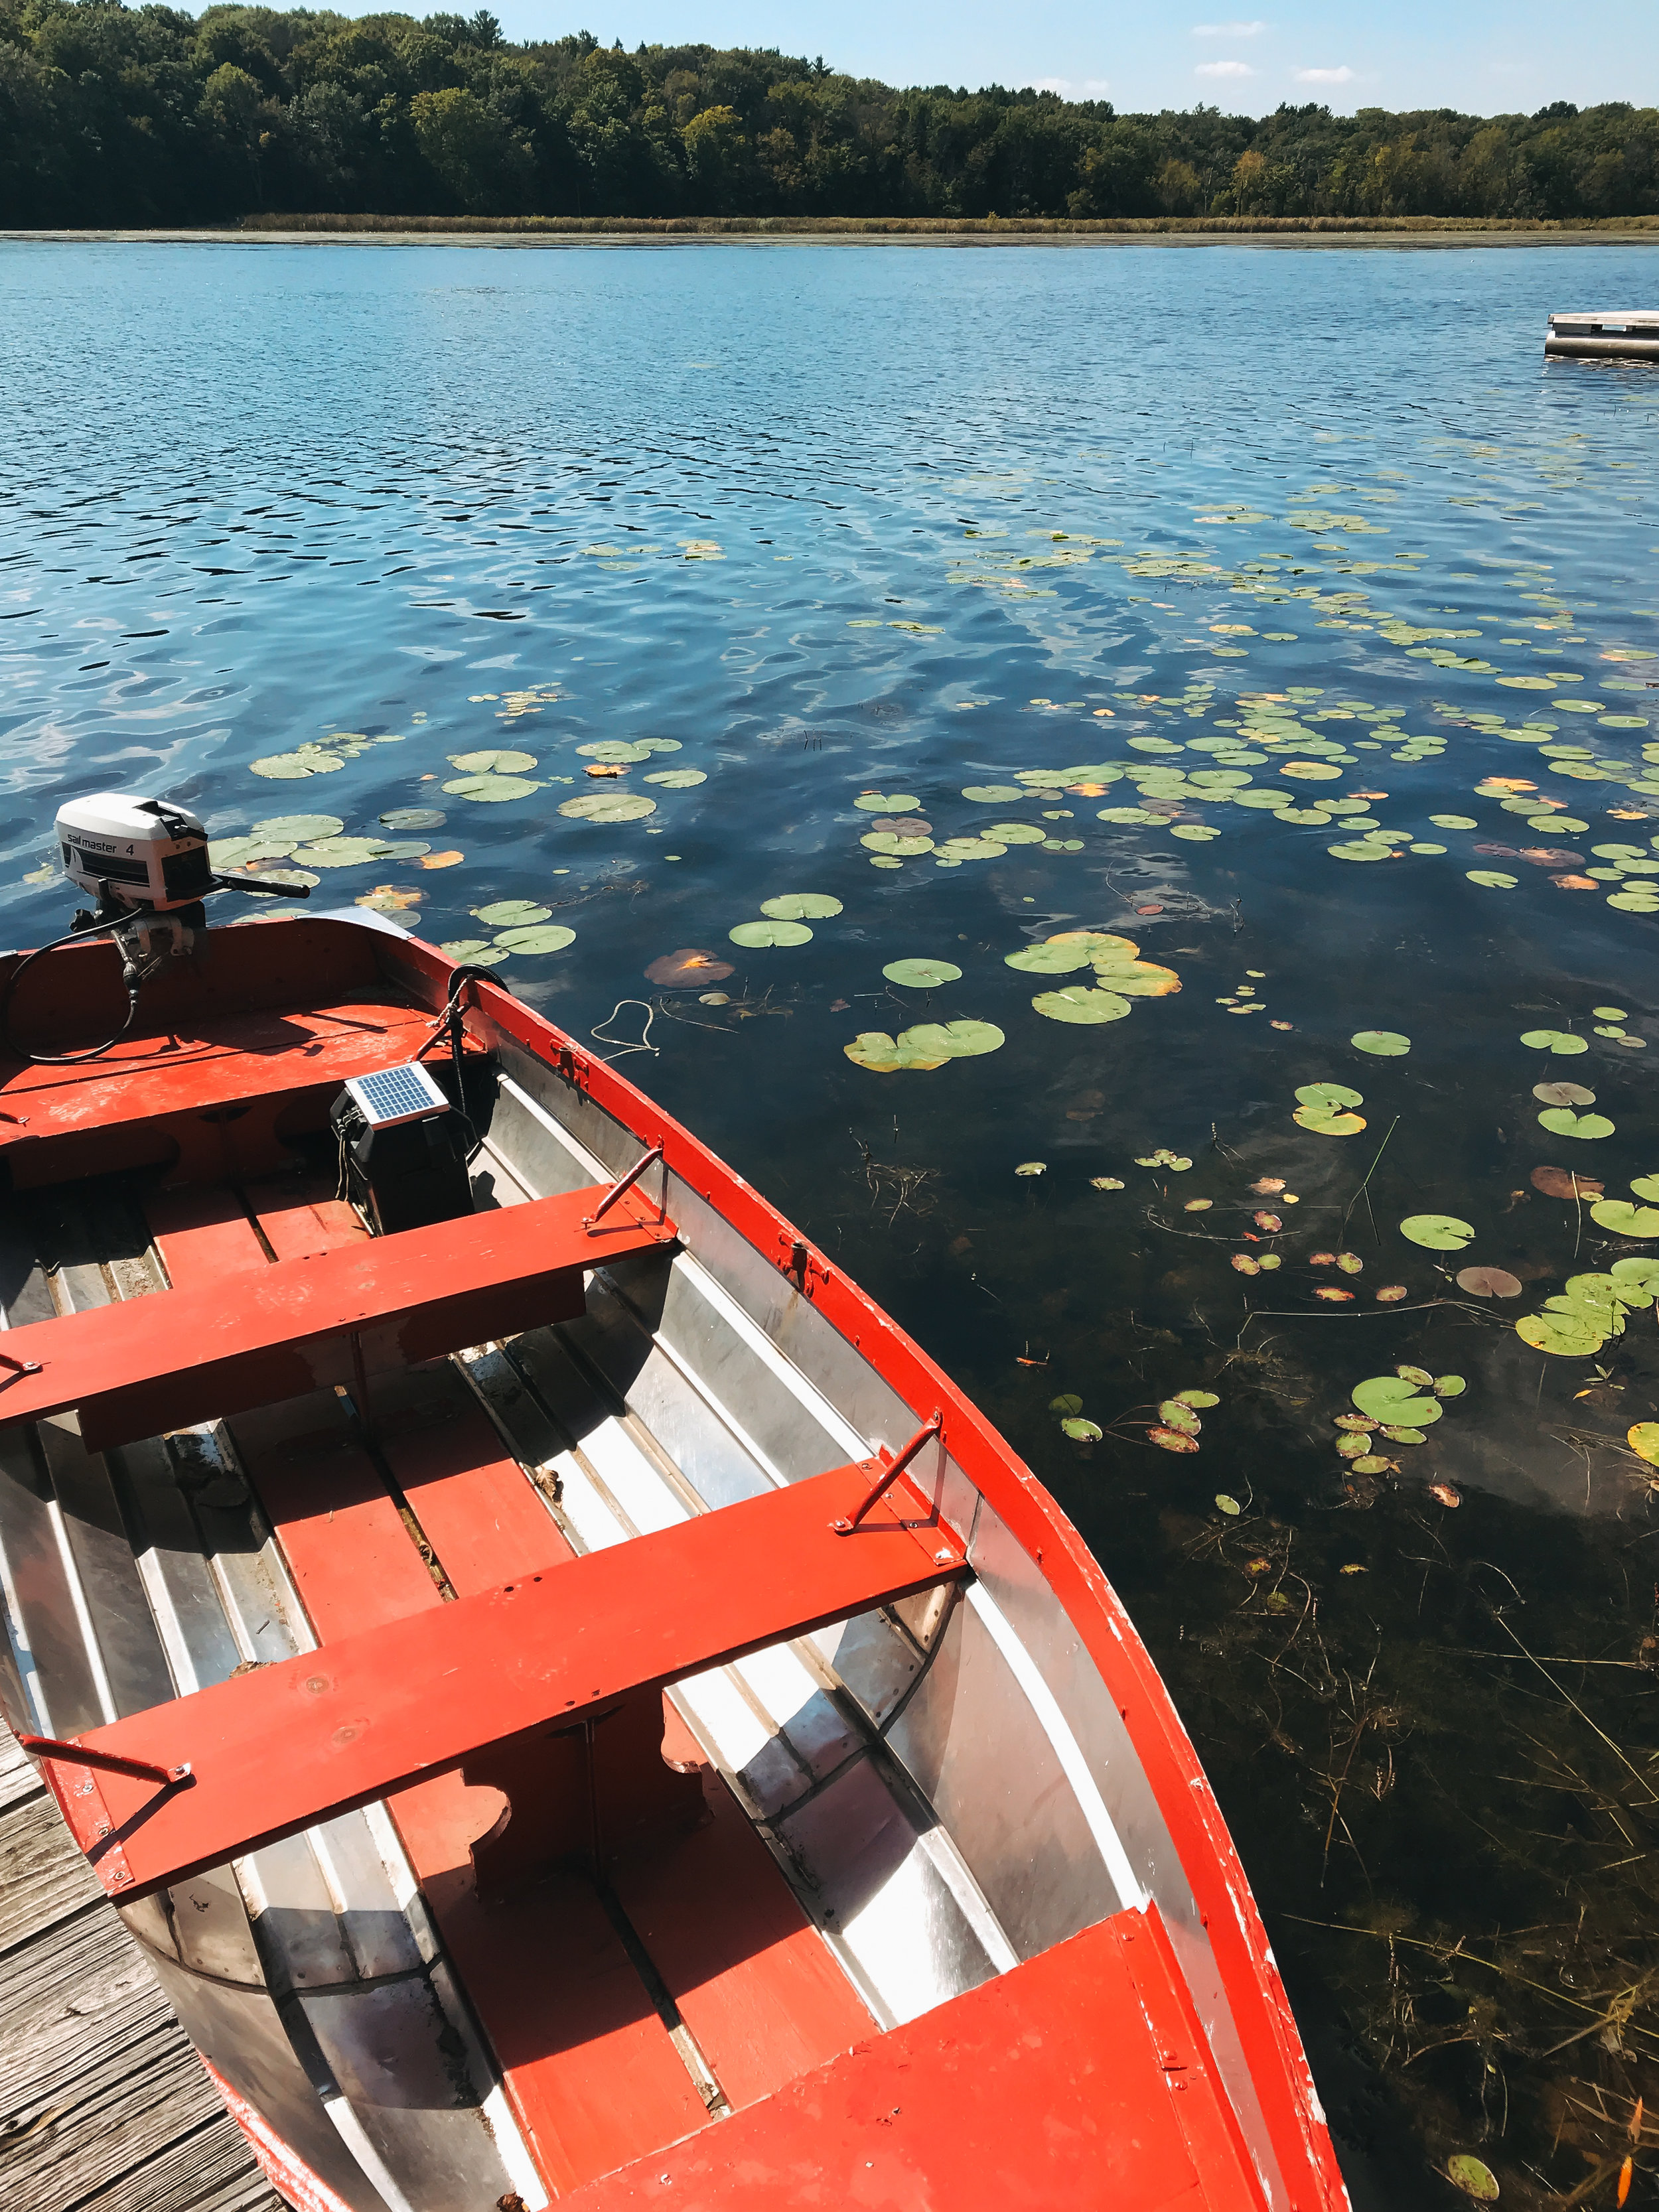 camp_wandawega_red_boat_lillies_water.jpg